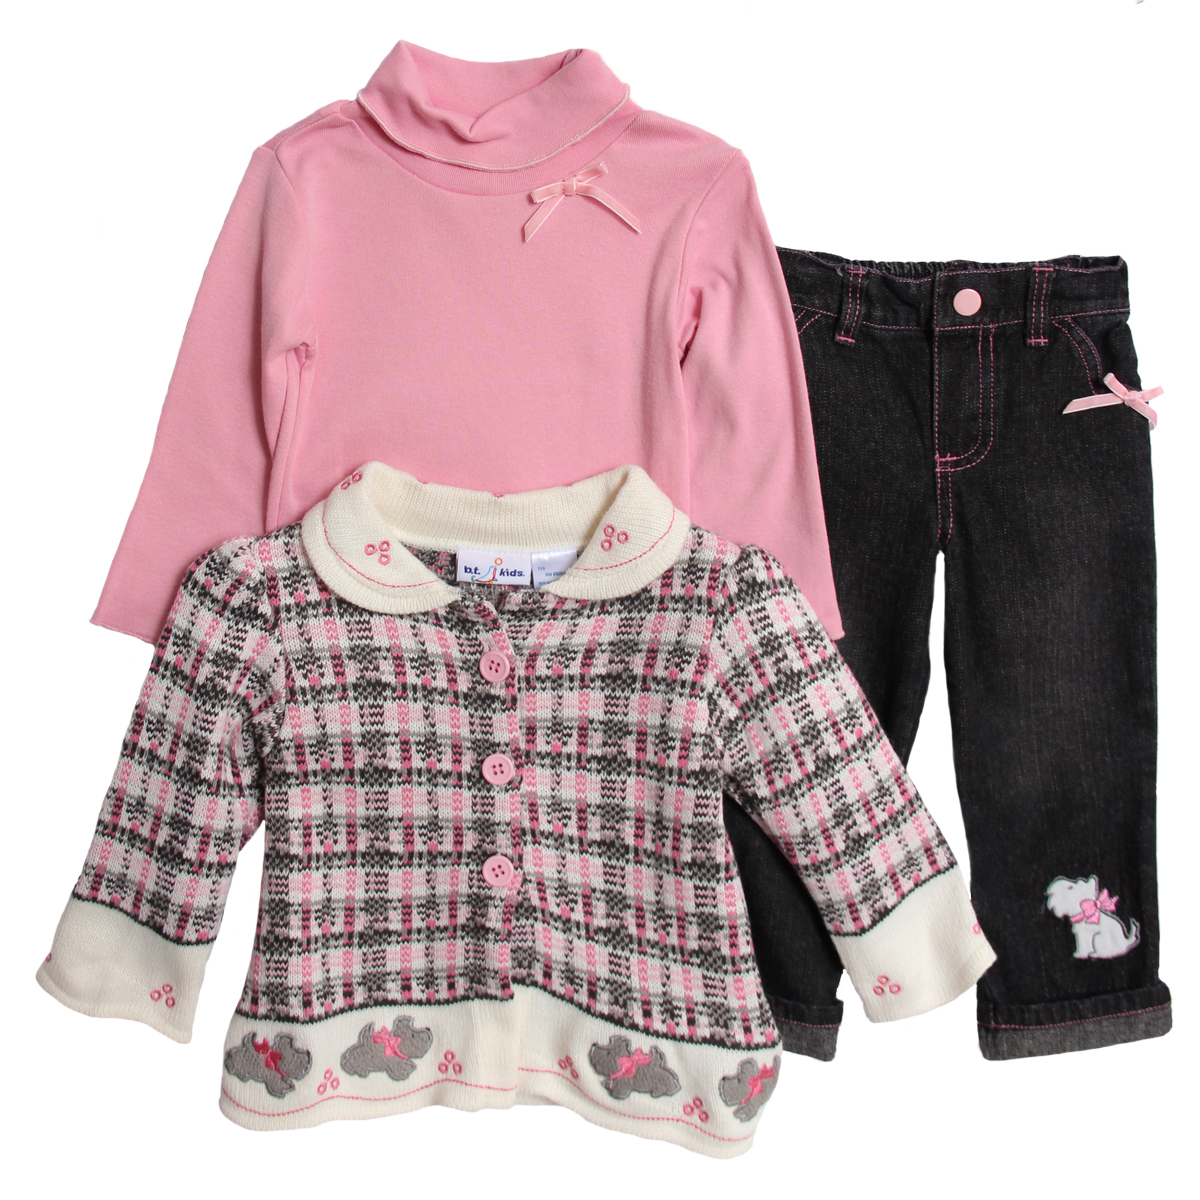 B.T. Kids Infant Baby Girls 3 Piece Pink Plaid Knit Sweater Turtleneck Jeans Set at Sears.com